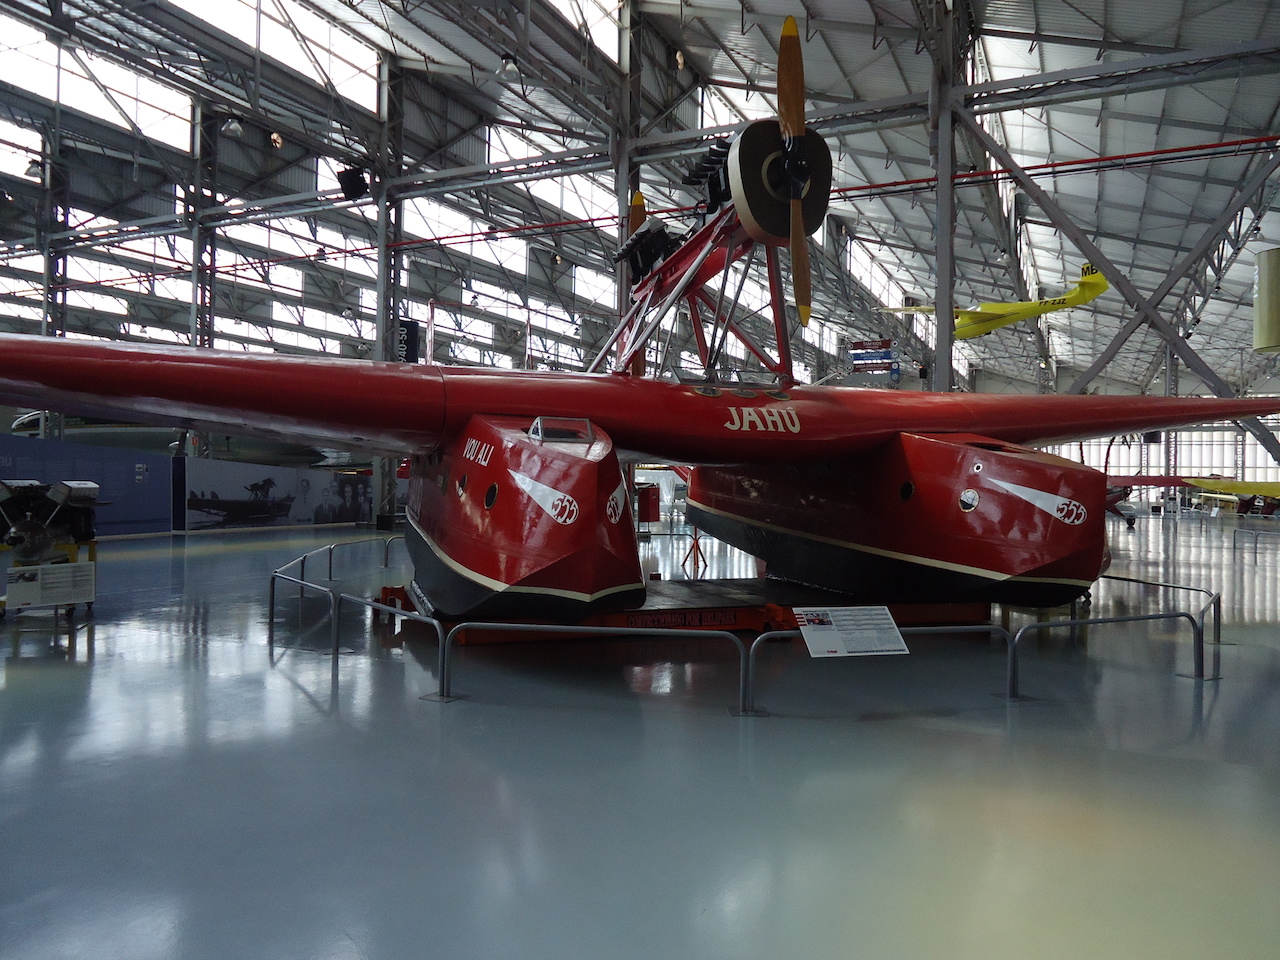 """The last remaining example is preserved in Brazil, at the TAM """"Asas de um sonho"""" museum, at São Carlos, São Paulo. The aircraft, registered I-BAUQ and named """"Jahú"""", was the S.55 used by Commander João Ribeiro de Barros in his crossing of the South Atlantic in 1927."""